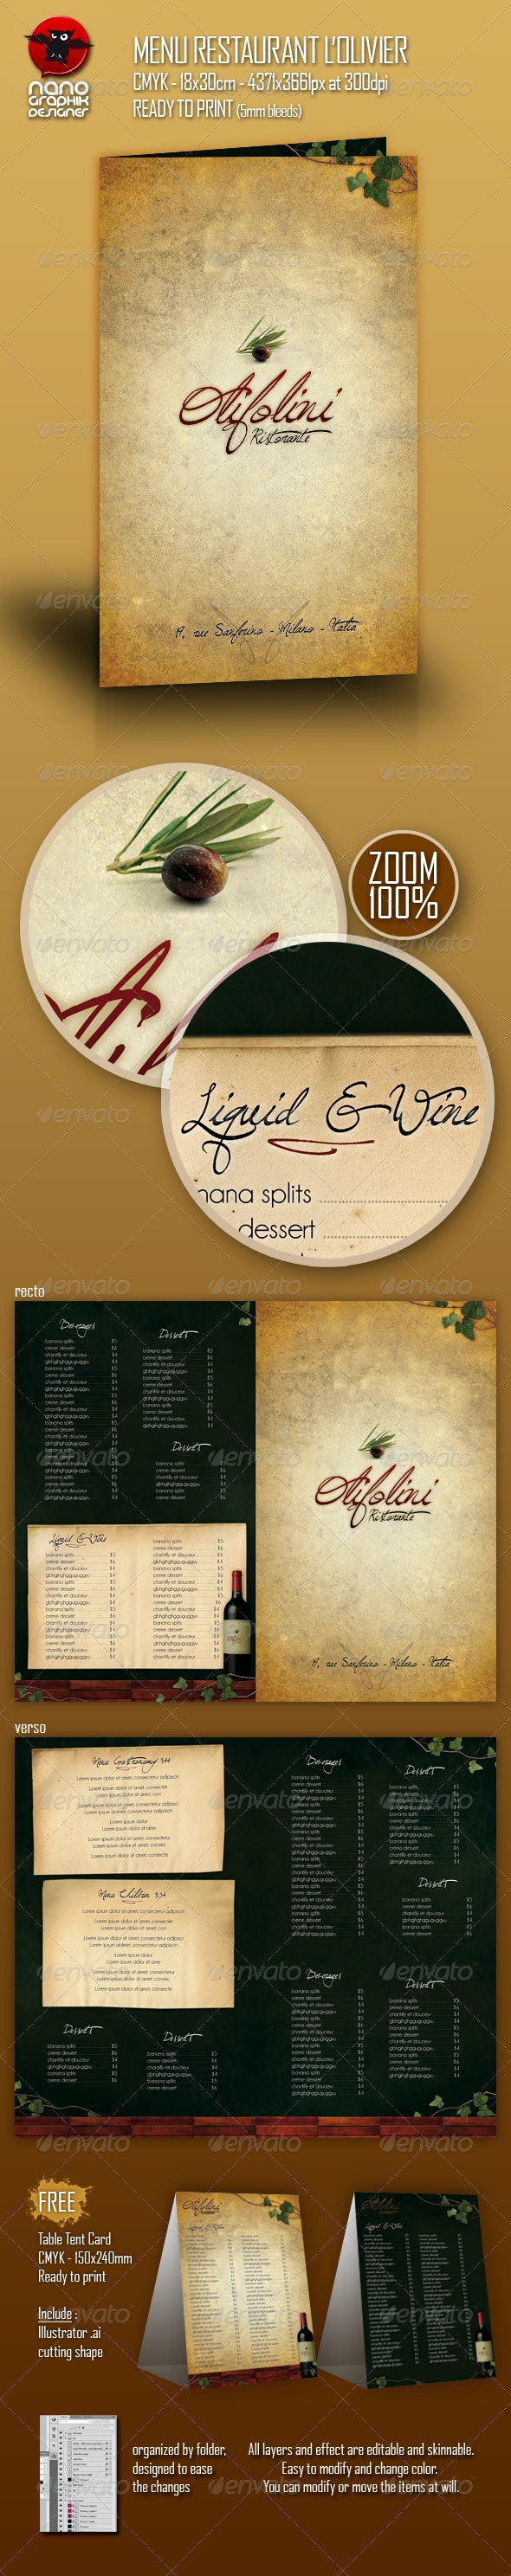 Menu Restaurant L'olivier - Food Menus Print Templates